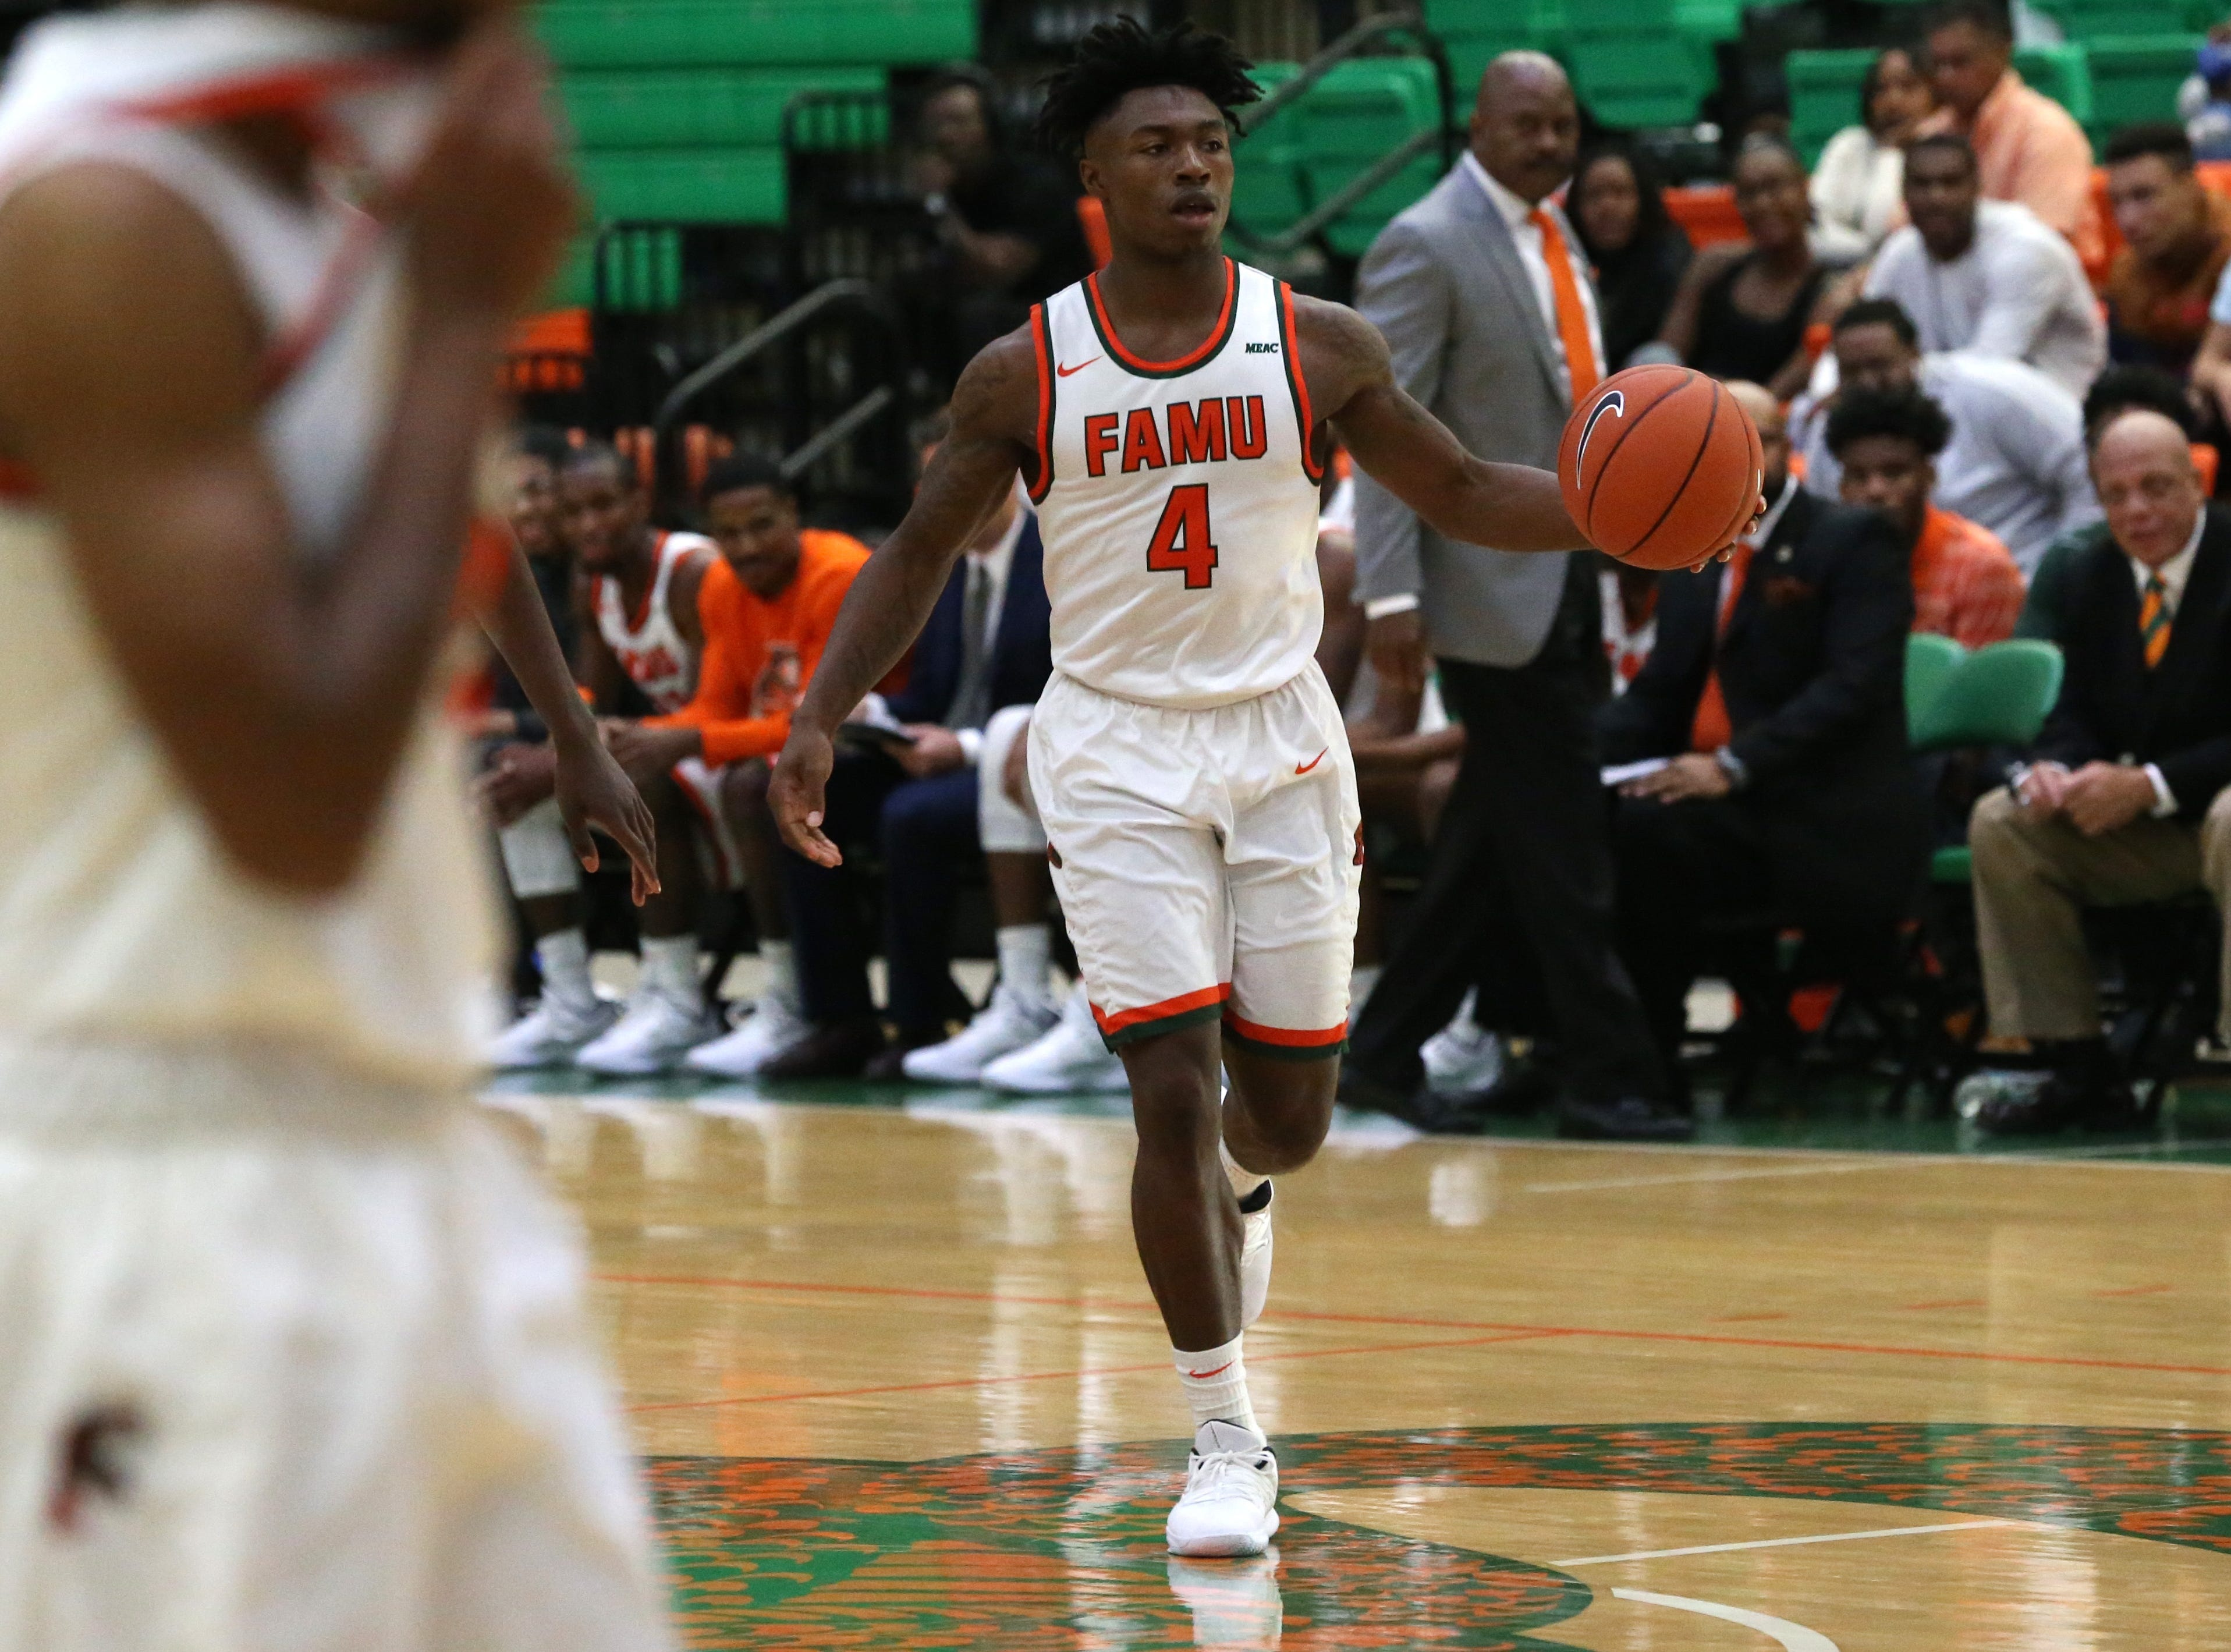 Florida A&M Rattlers guard Rod Melton Jr. (4) contemplates on passing or shooting as the FAMU Rattlers take on the Tuskegee Golden Tigers in their first home game of the season in the Lawson Center, Saturday, Nov. 10, 2018.